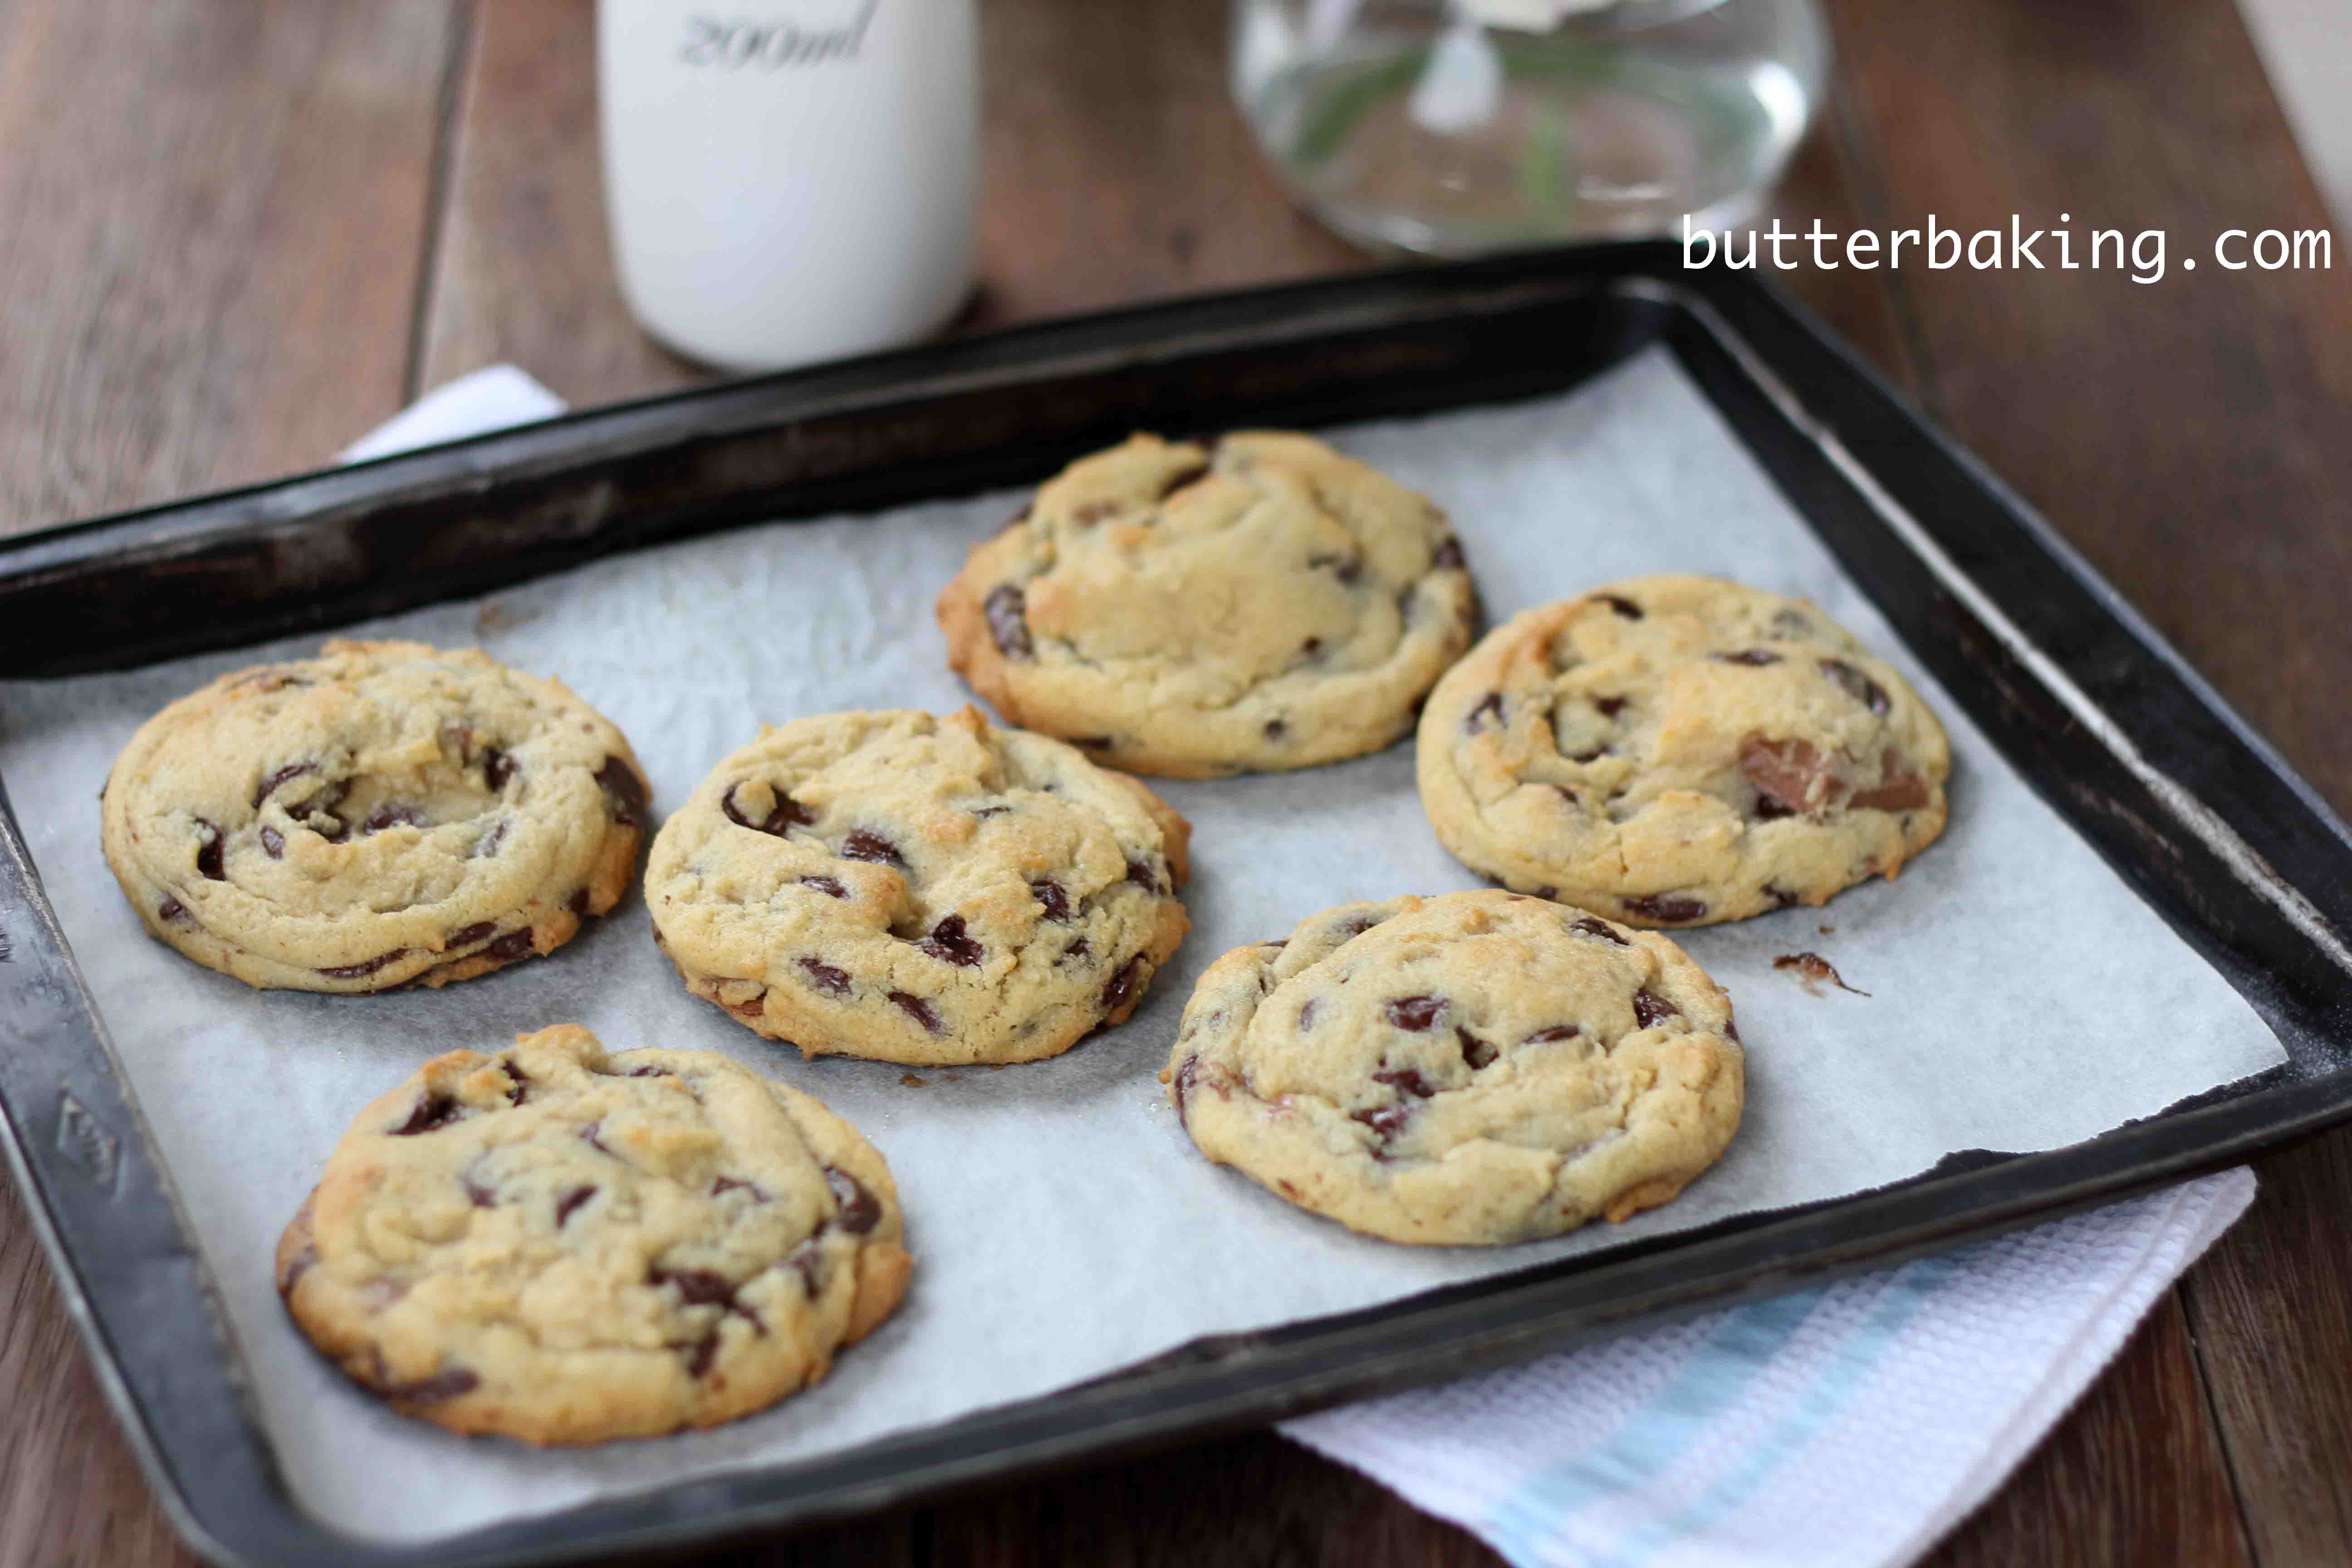 Baking Cookies Images - Reverse Search